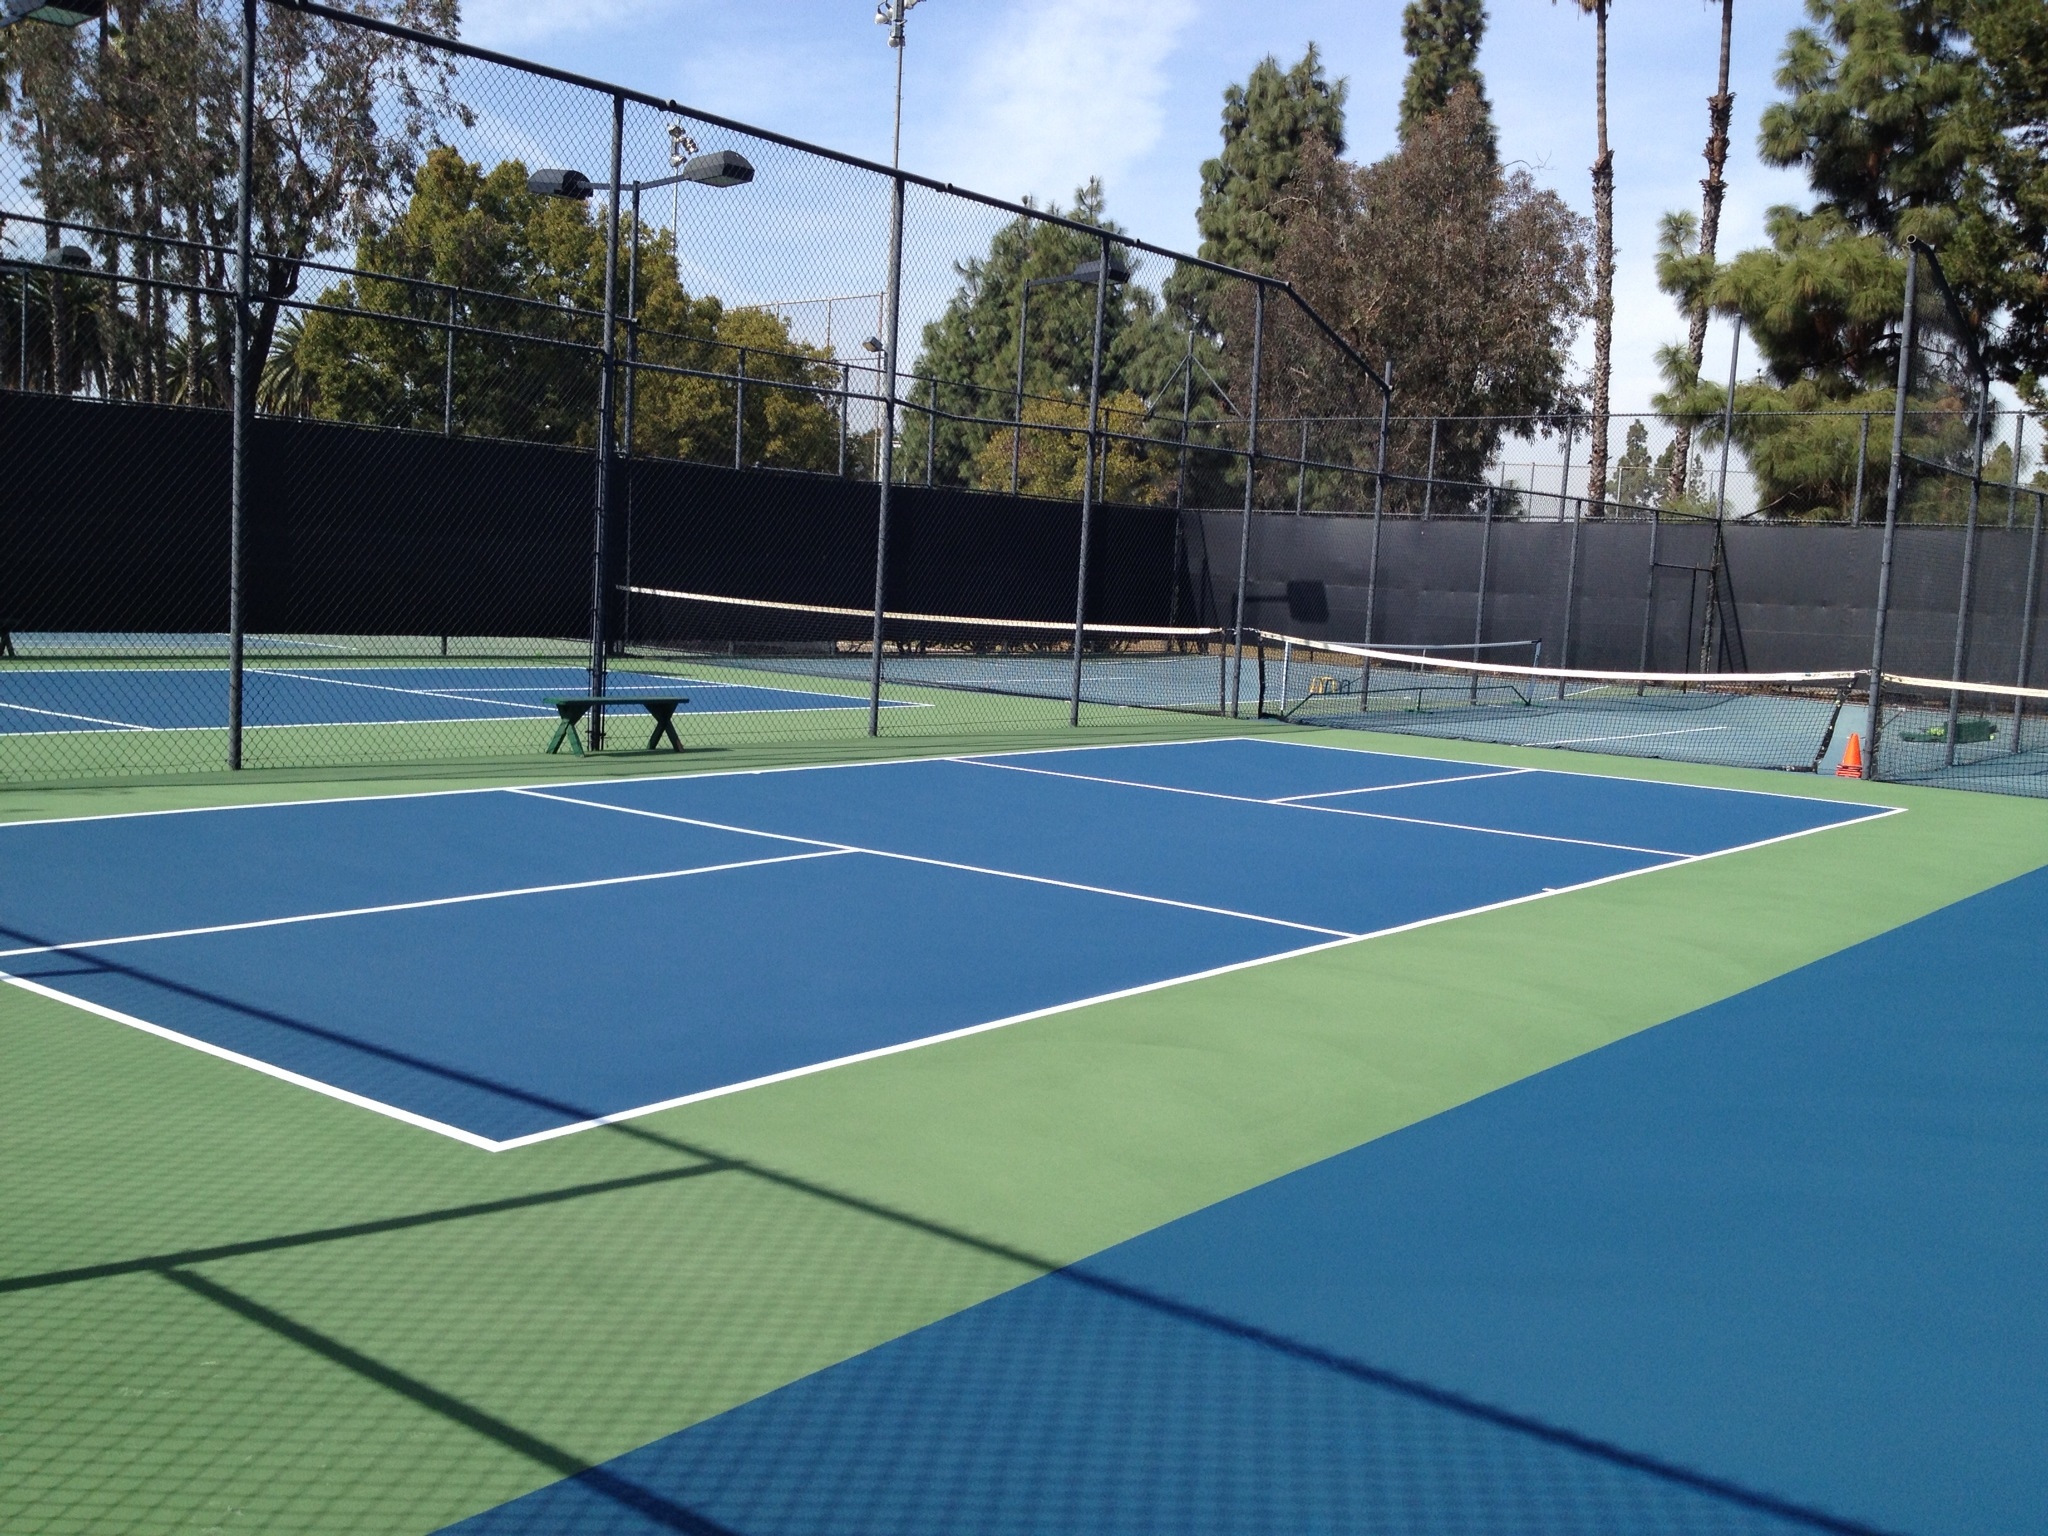 netball court diagram layout leviton cat5e wiring pickleball dimensions bing images